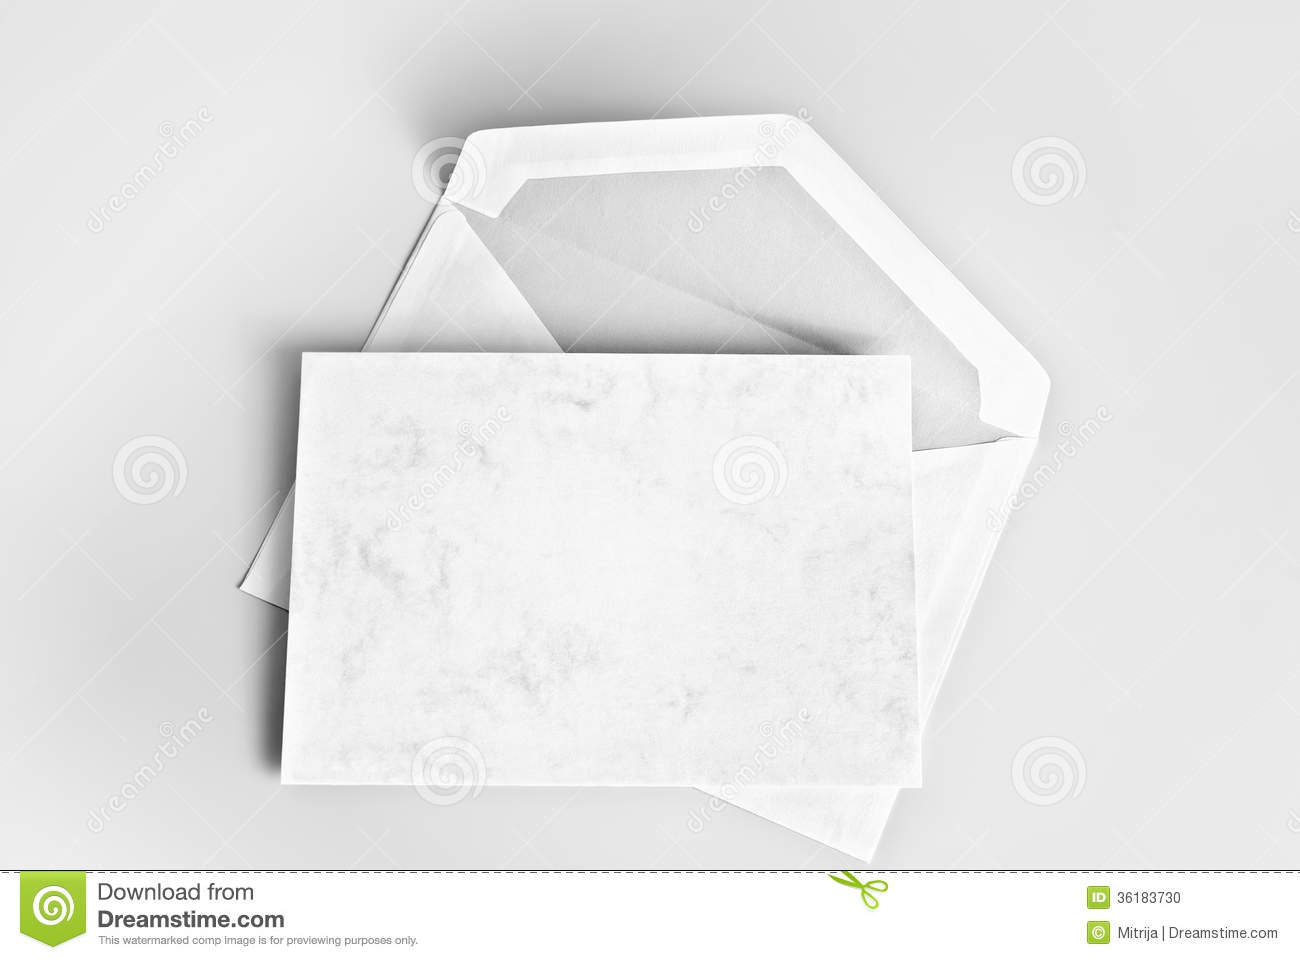 Blank Stationery  Card And Envelope Stock Photo   Image  36183730